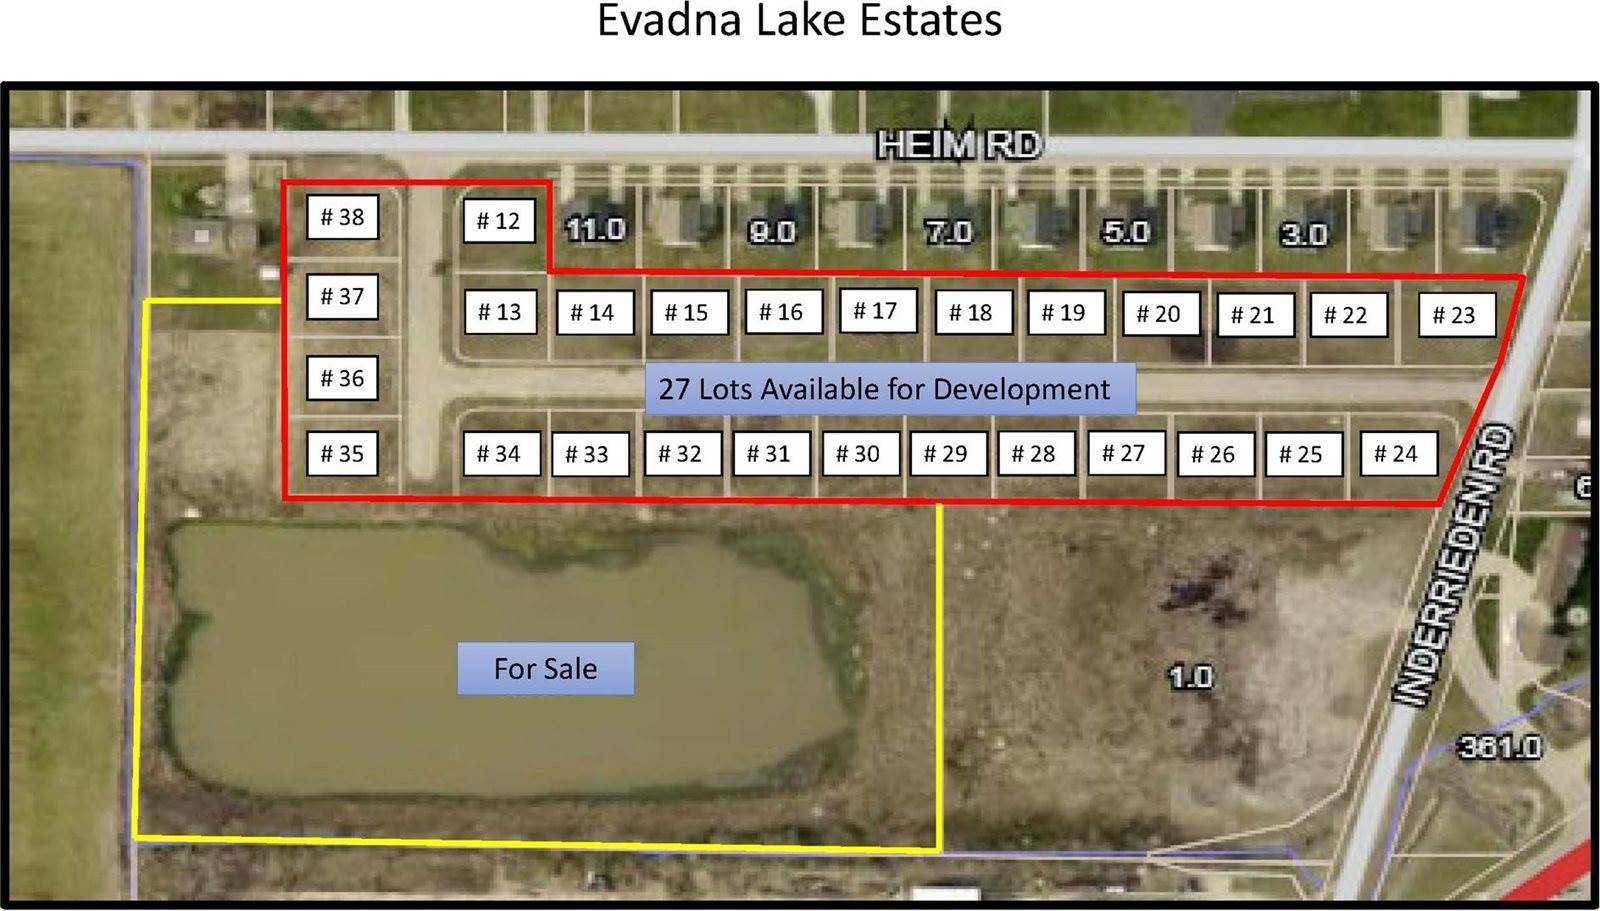 102 Evadna Drive, Lot 16, Chandler, IN 47610